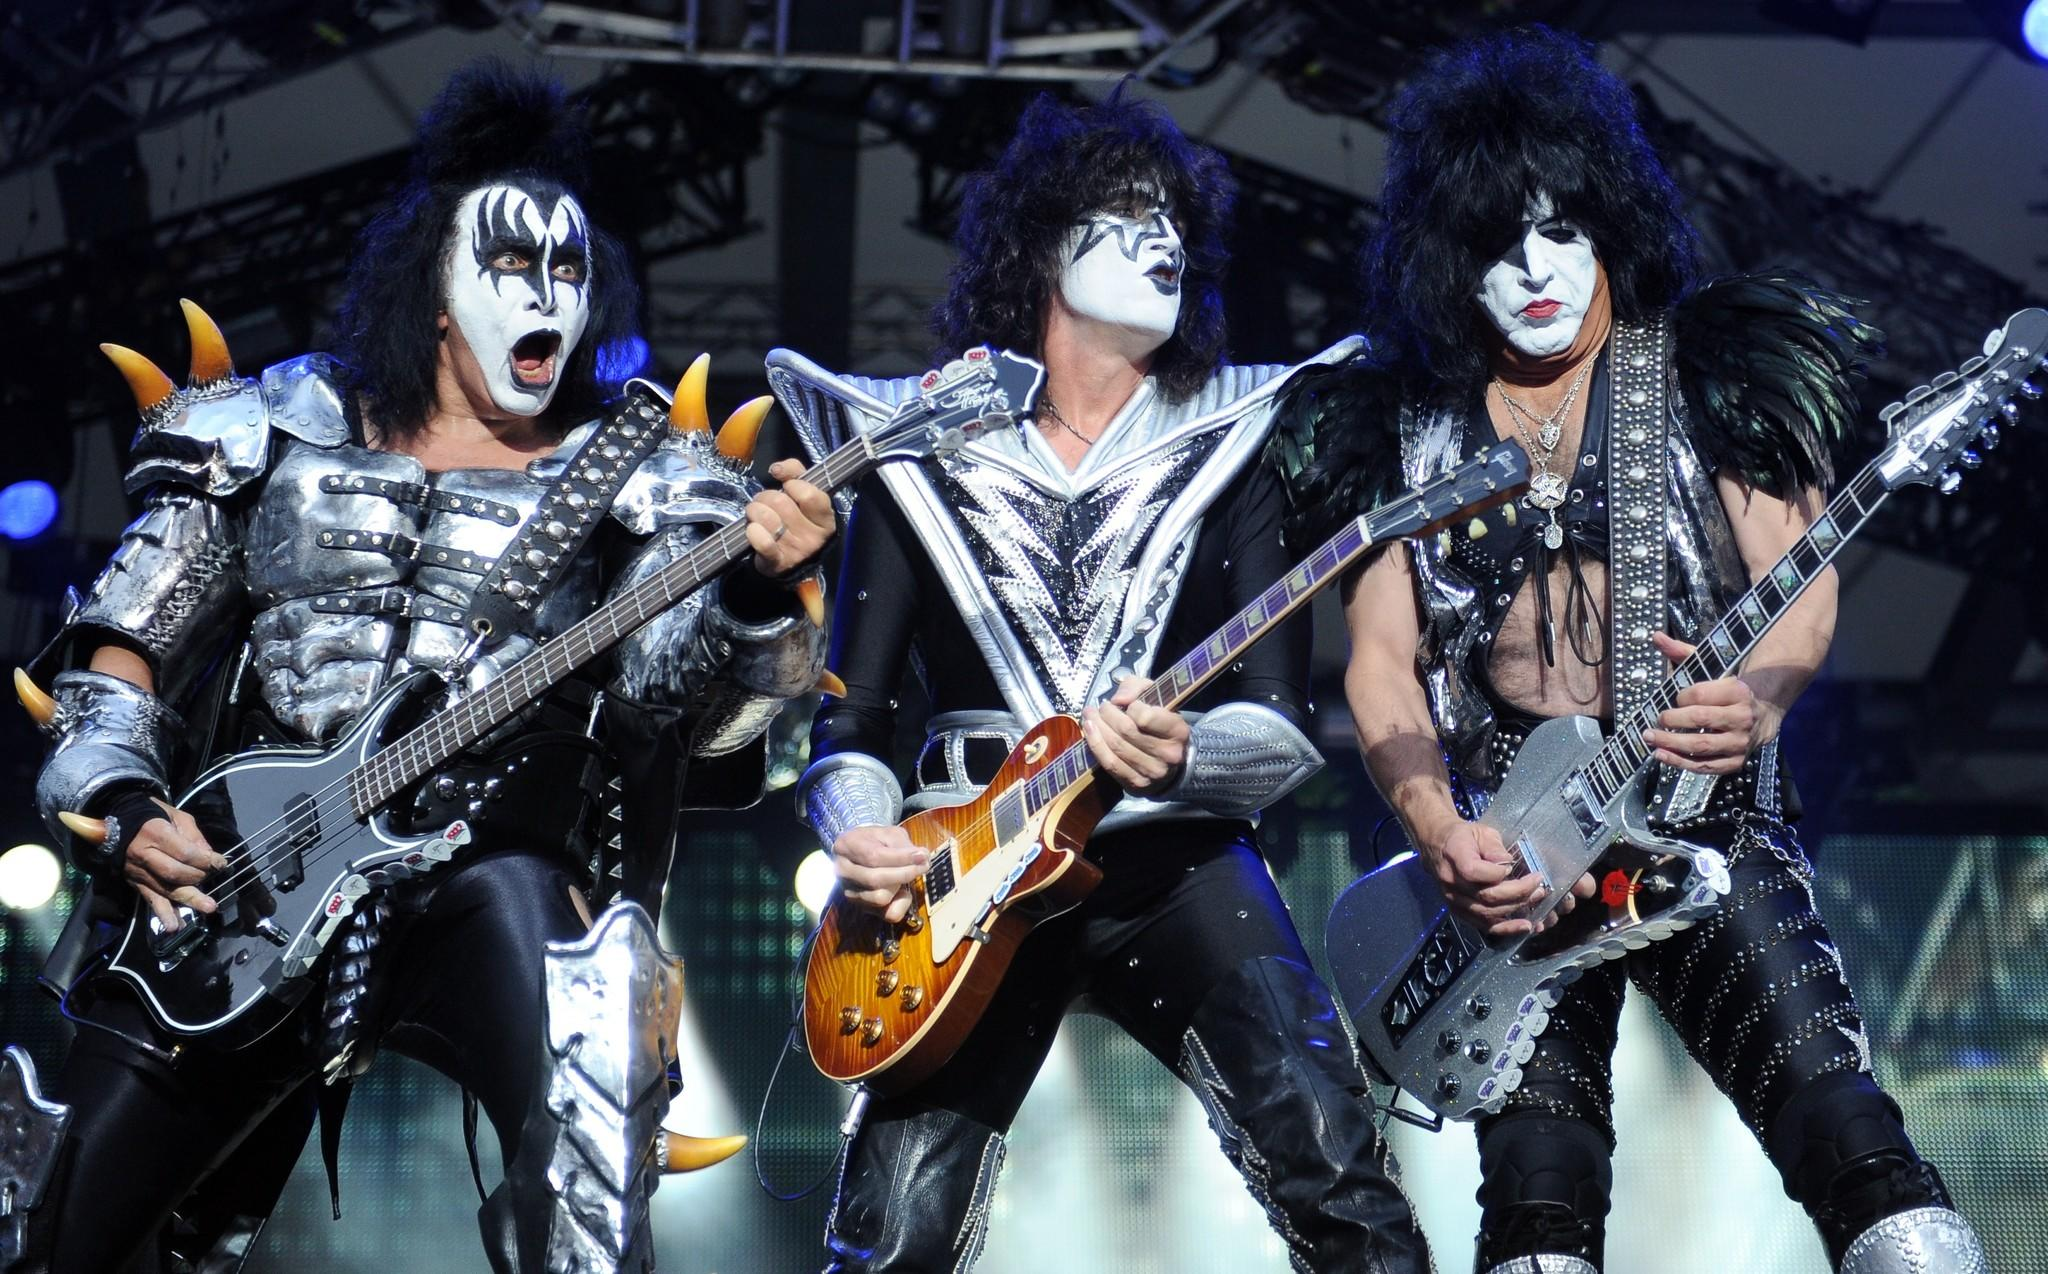 KISS says it won't be performing at the Rock and Roll Hall of Fame induction ceremony in April.